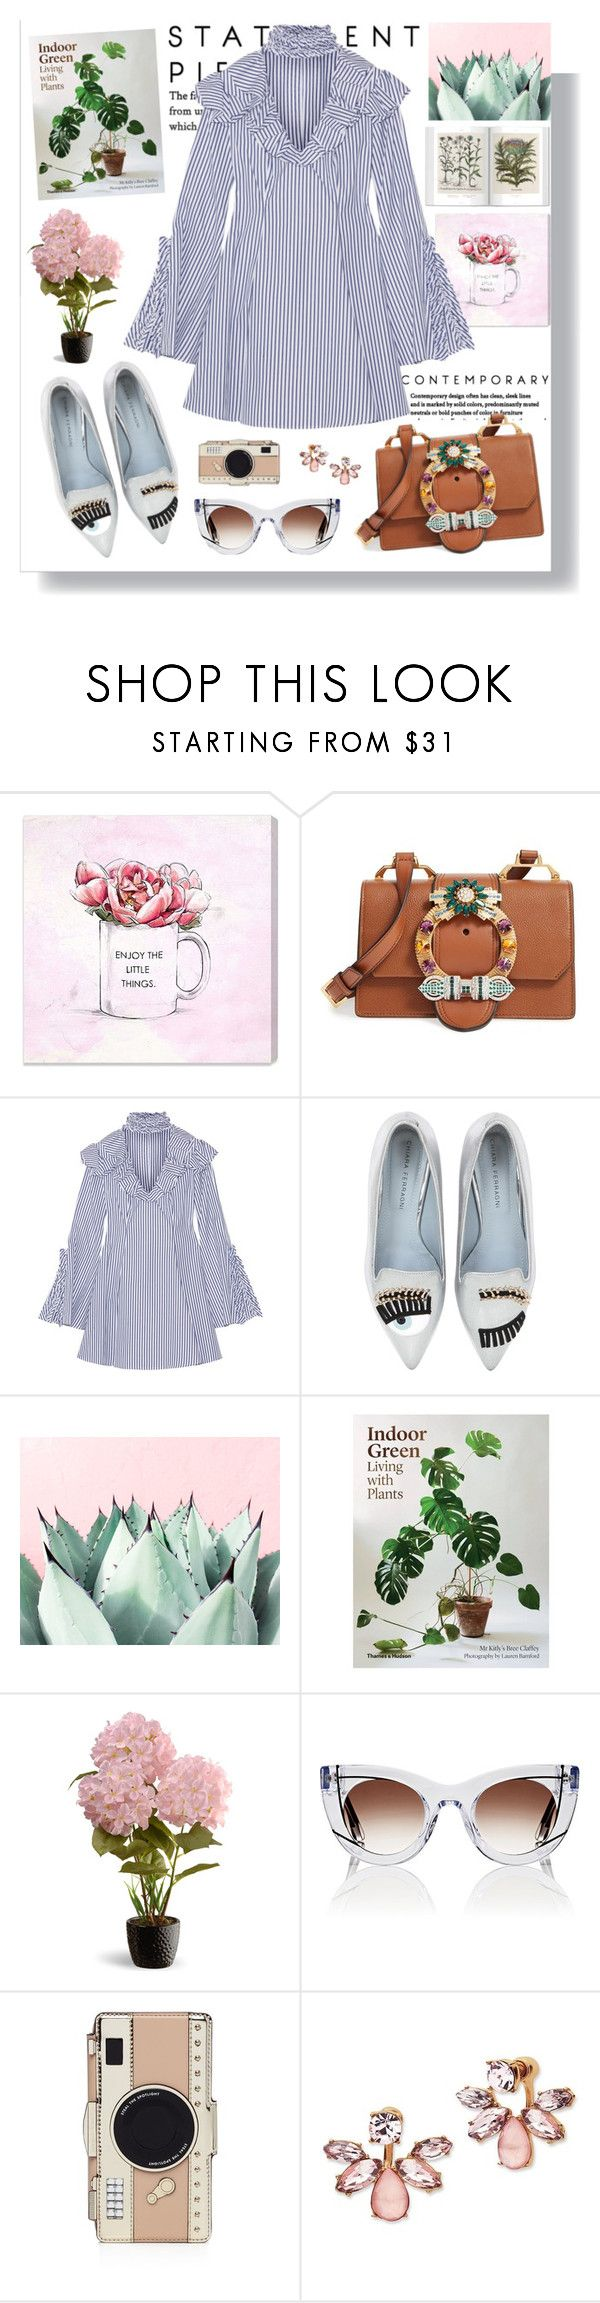 """""""Dainty Spring"""" by fashionfreakforlife on Polyvore featuring Oliver Gal Artist Co., Miu Miu, Caroline Constas, Chiara Ferragni, National Tree Company, Thierry Lasry, Kate Spade and Marchesa"""